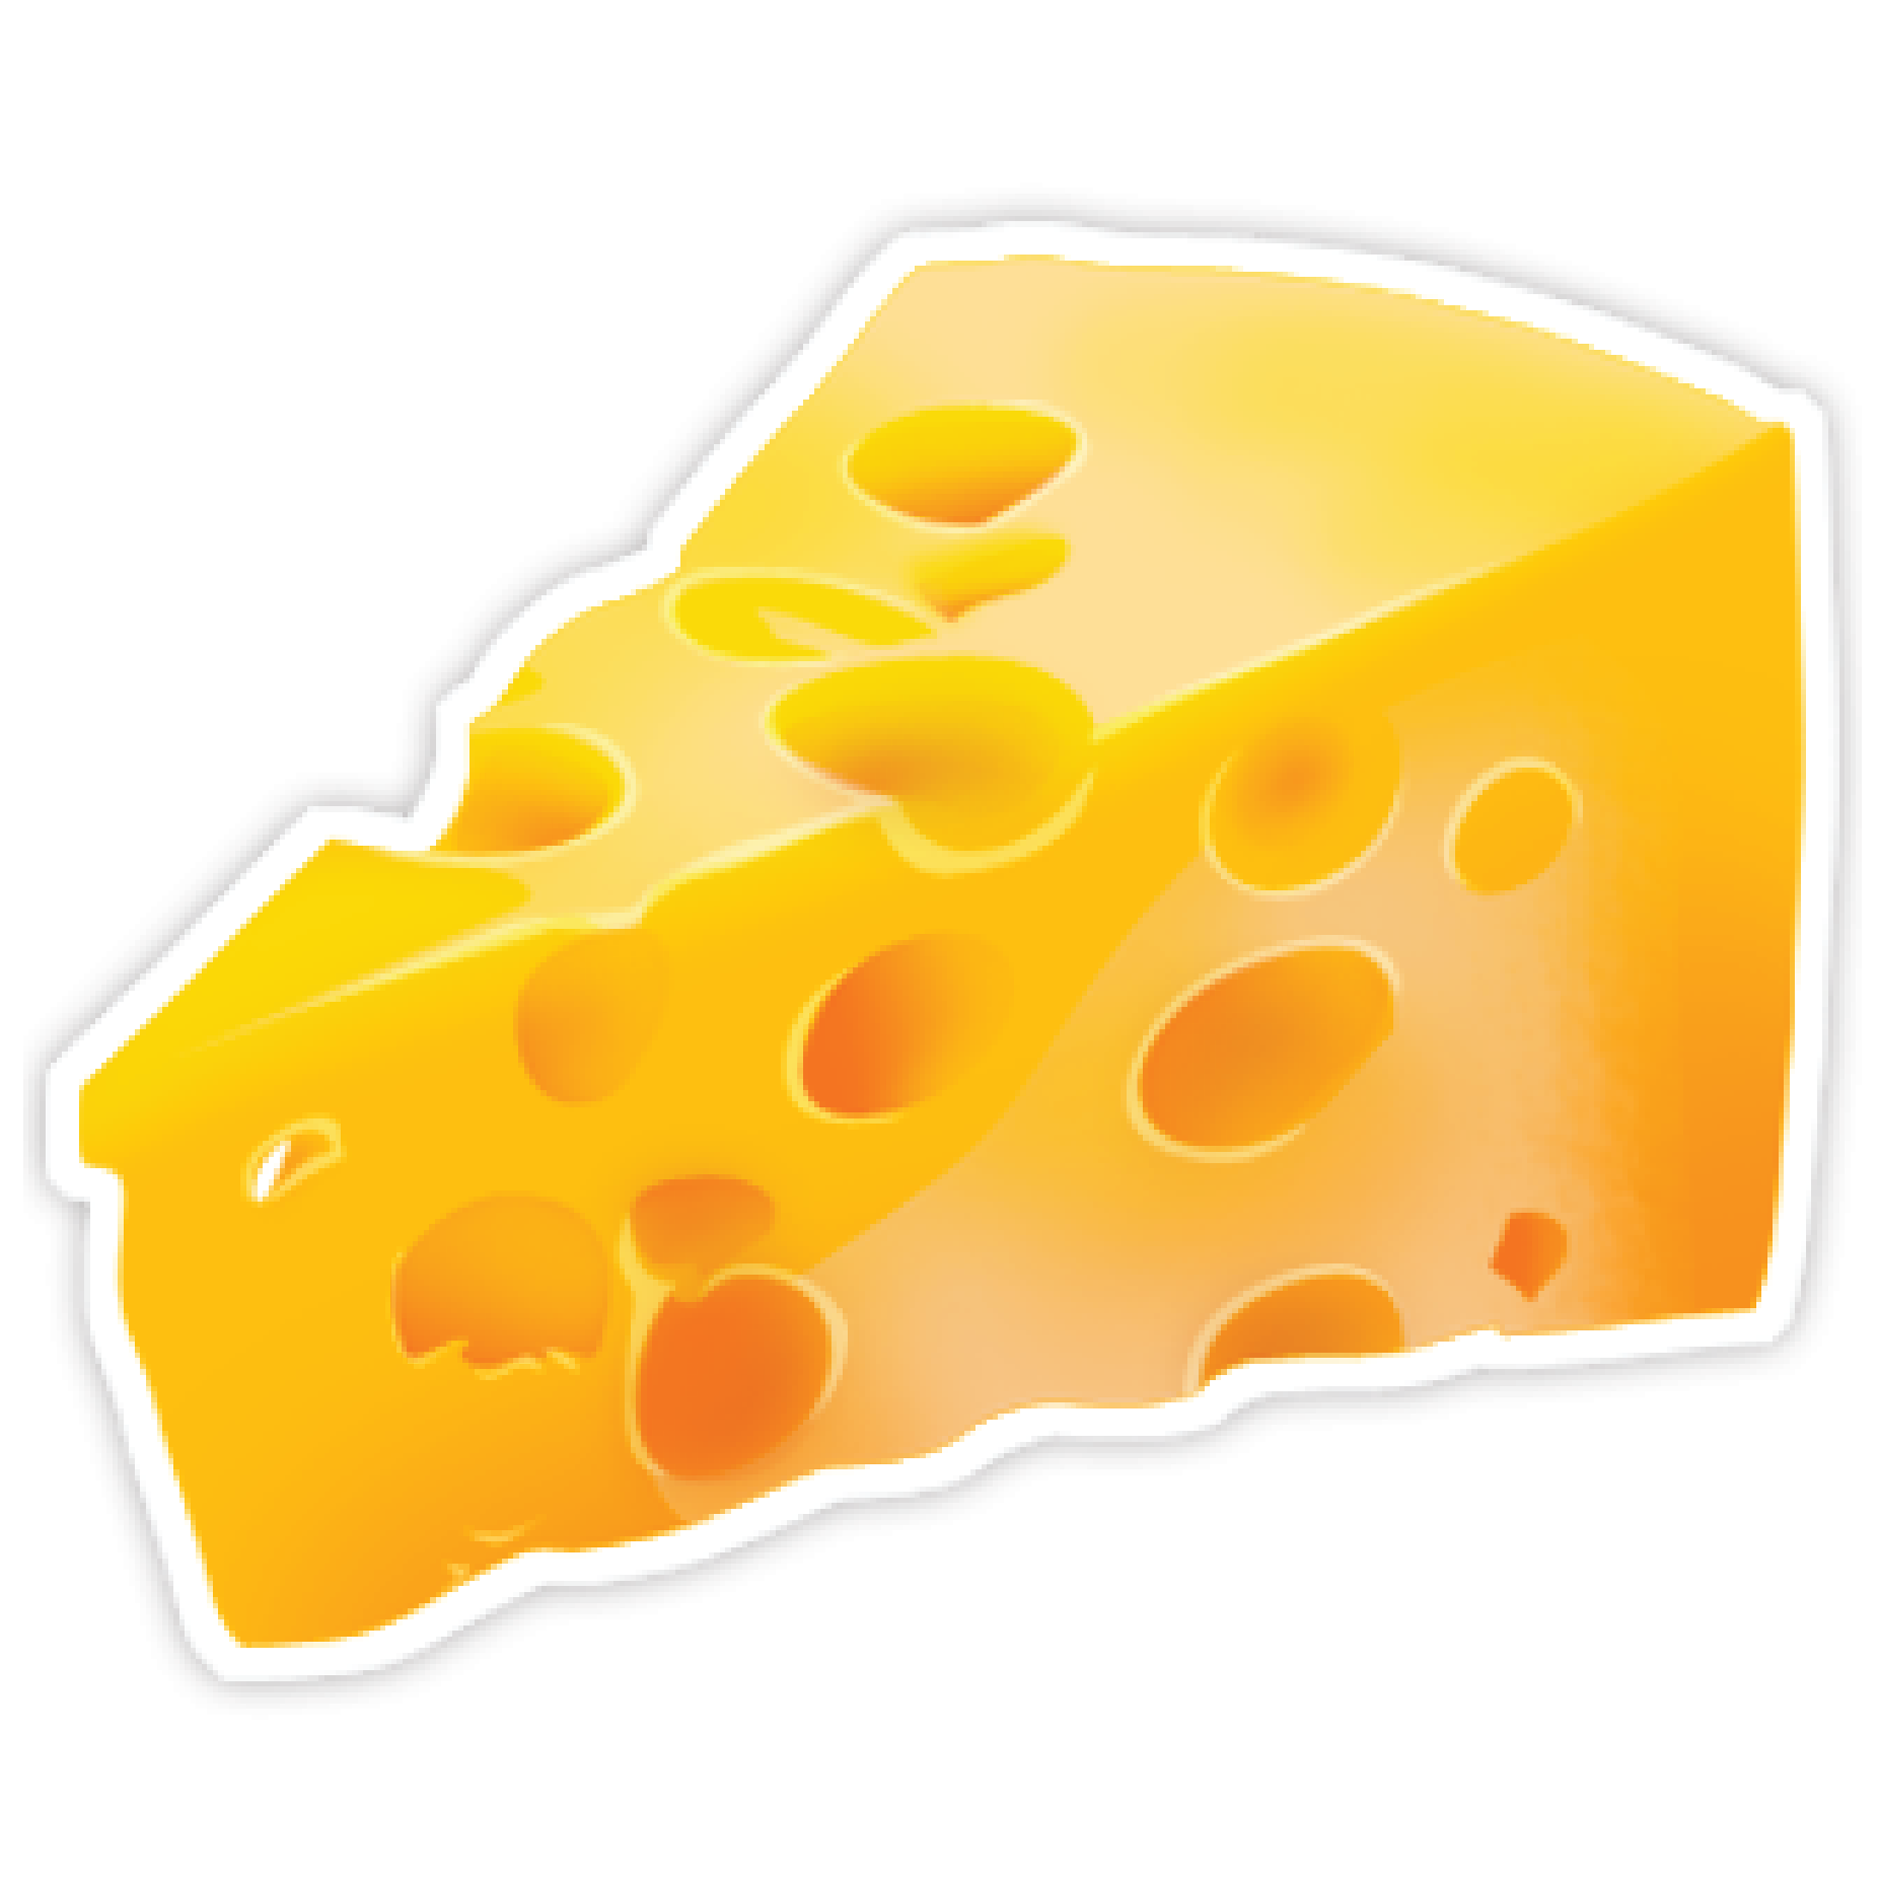 Where s the cheese - Tremr  Cheese